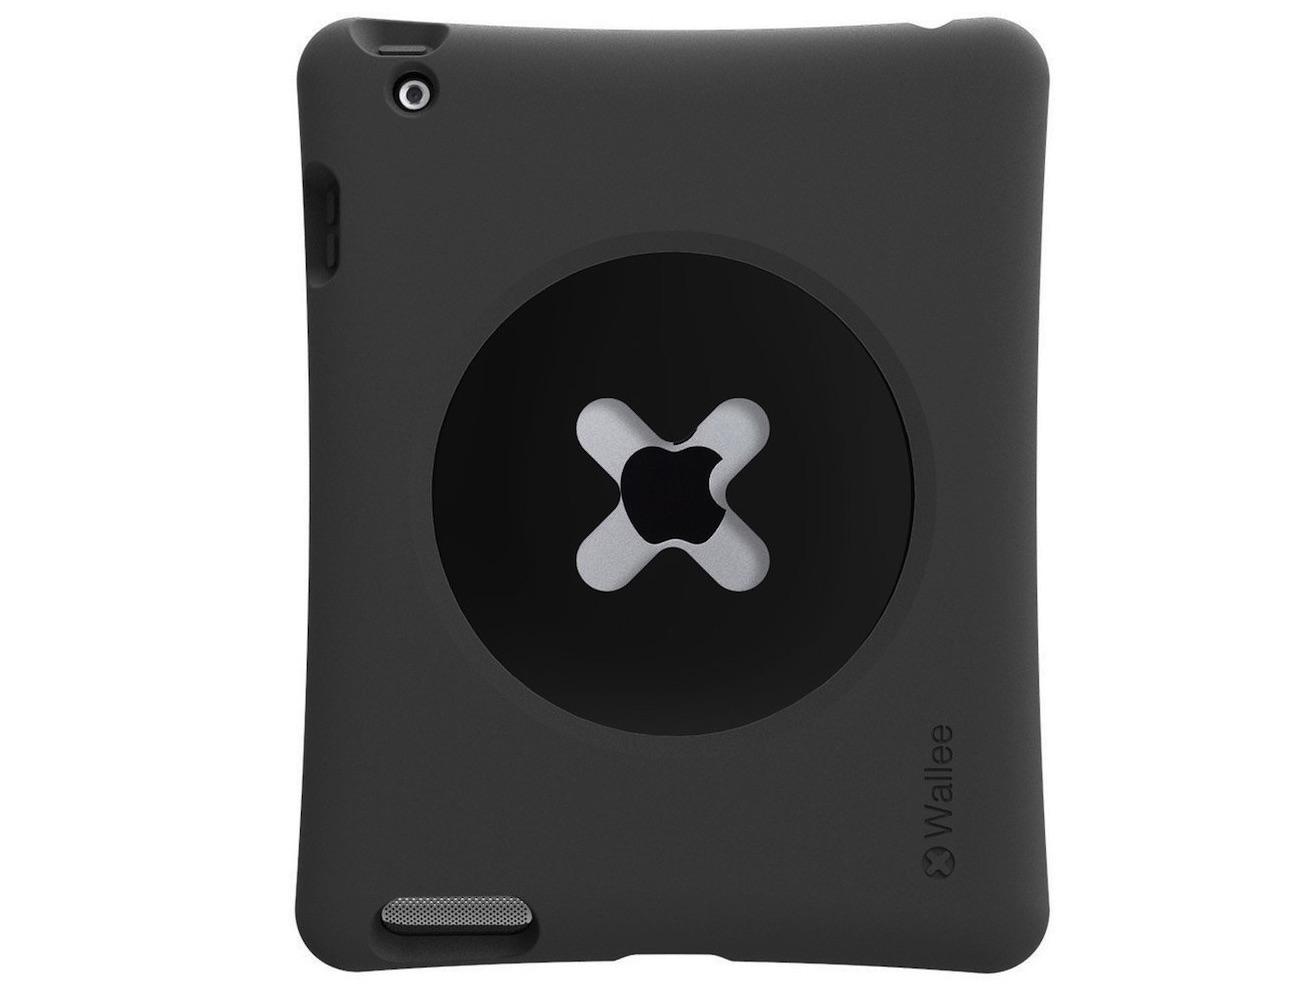 Wallee Pro Bumper for iPad 2, 3, 4, and Mini